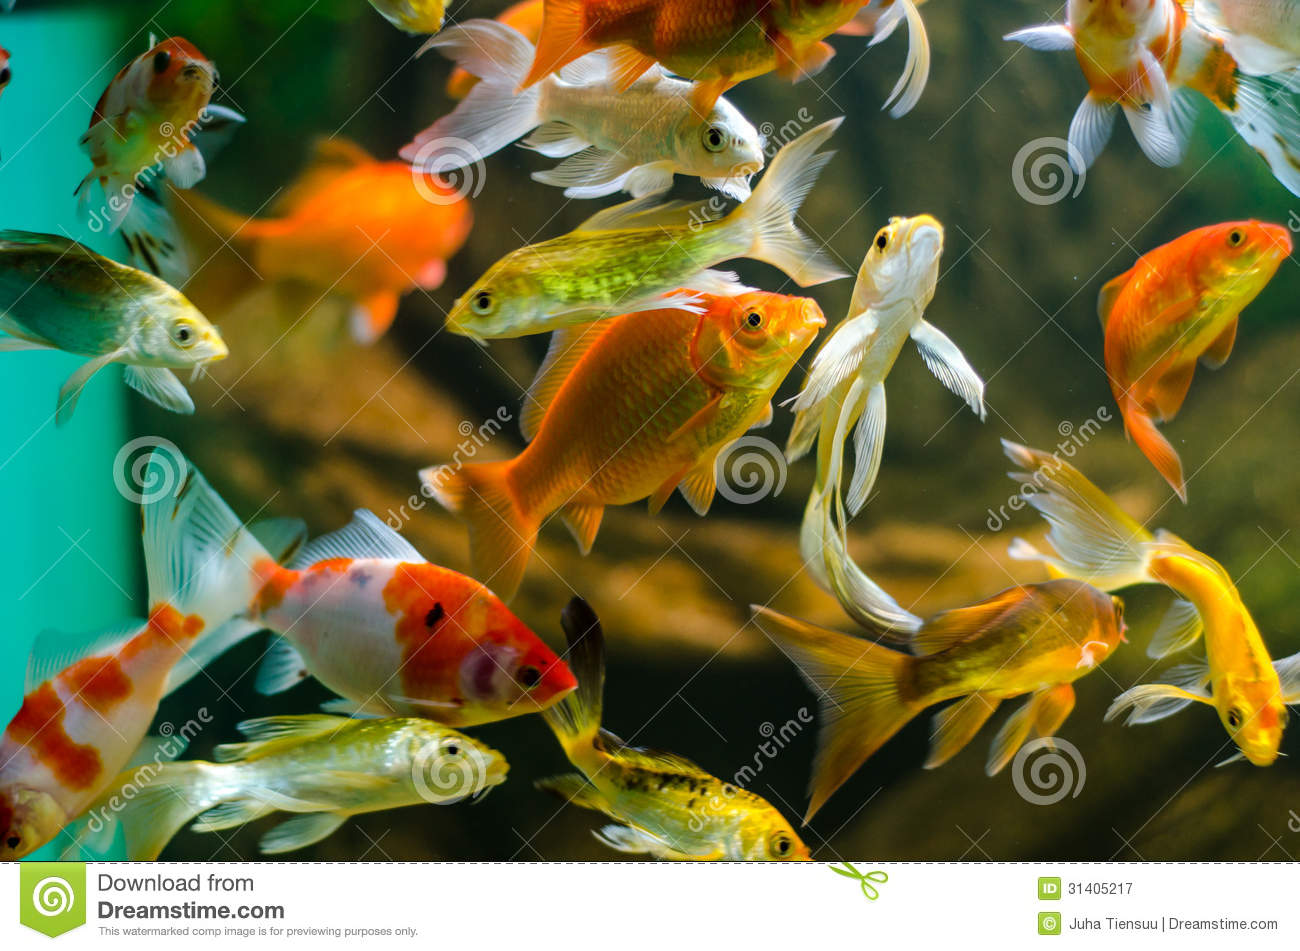 Koi et carpe dans l 39 aquarium photographie stock libre de for Poisson koi aquarium